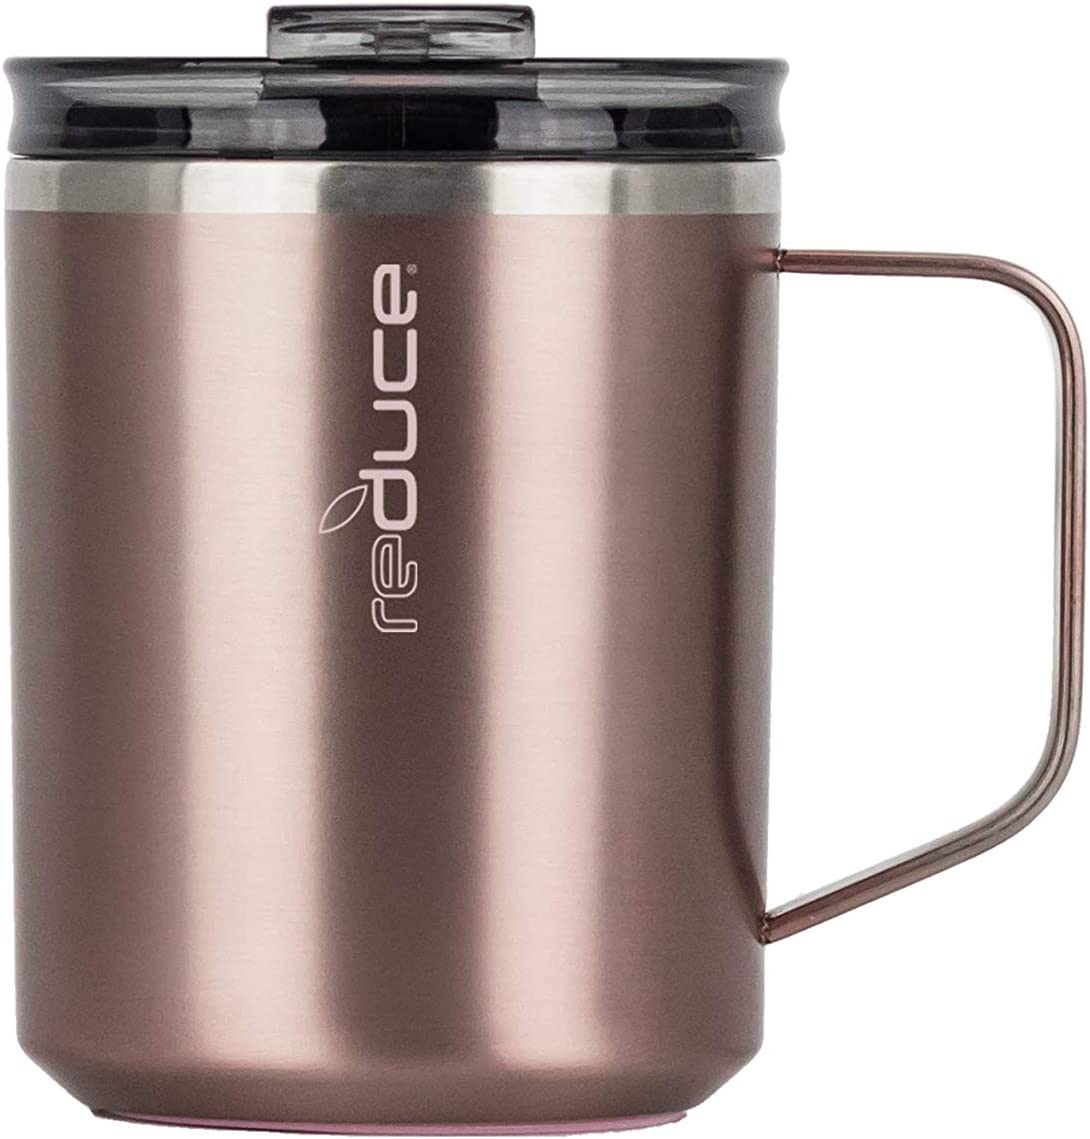 Reduce Hot1 Camping Mug with Lid and Handle, 14 oz – An Ideal Stainless Coffee Mug for the Home and Office – This Travel Coffee Mug with Handle Fits Under Single Serve Machine – Rose Gold